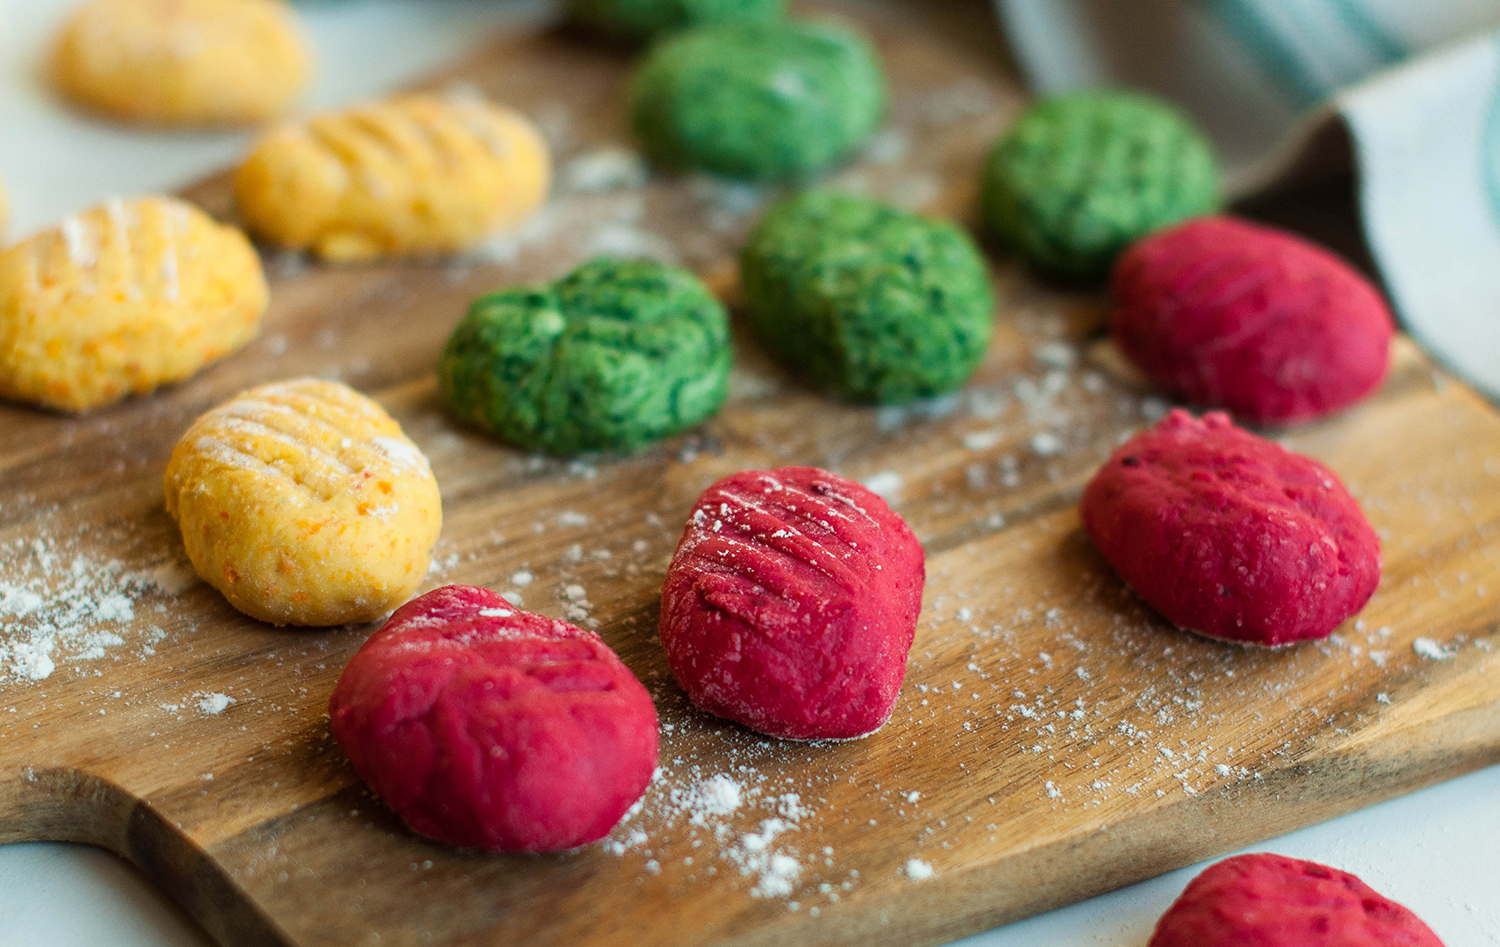 homemade-gnocchi-ricotta-spinach-carrot-beetroot-lea-lou-4